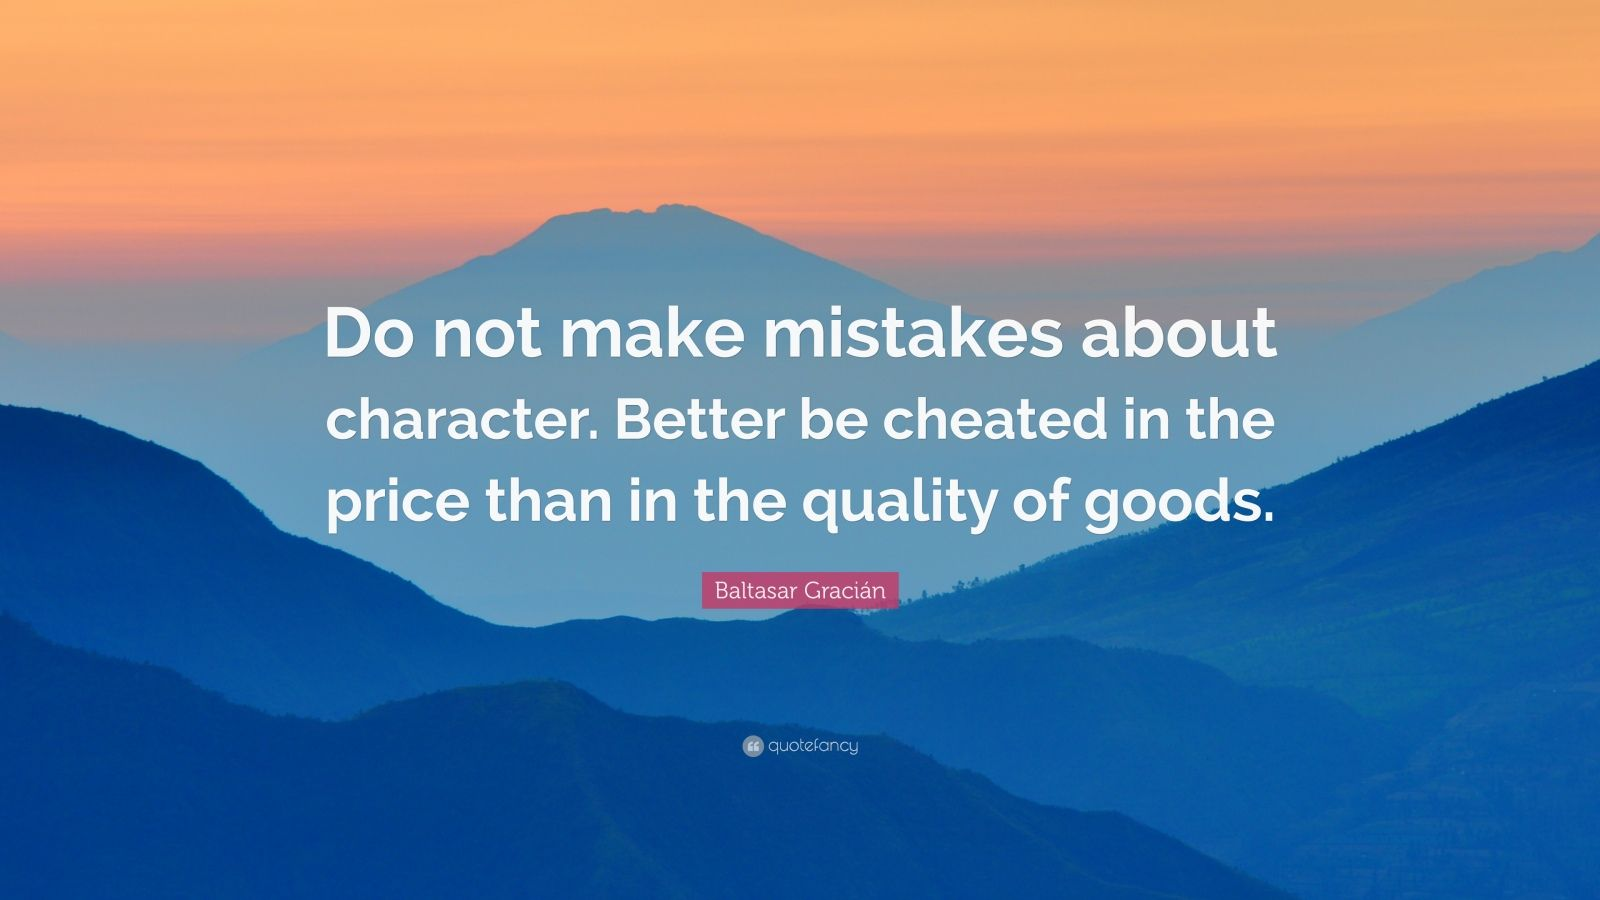 """Baltasar Gracián Quote: """"Do not make mistakes about character. Better be cheated in the price than in the quality of goods."""""""